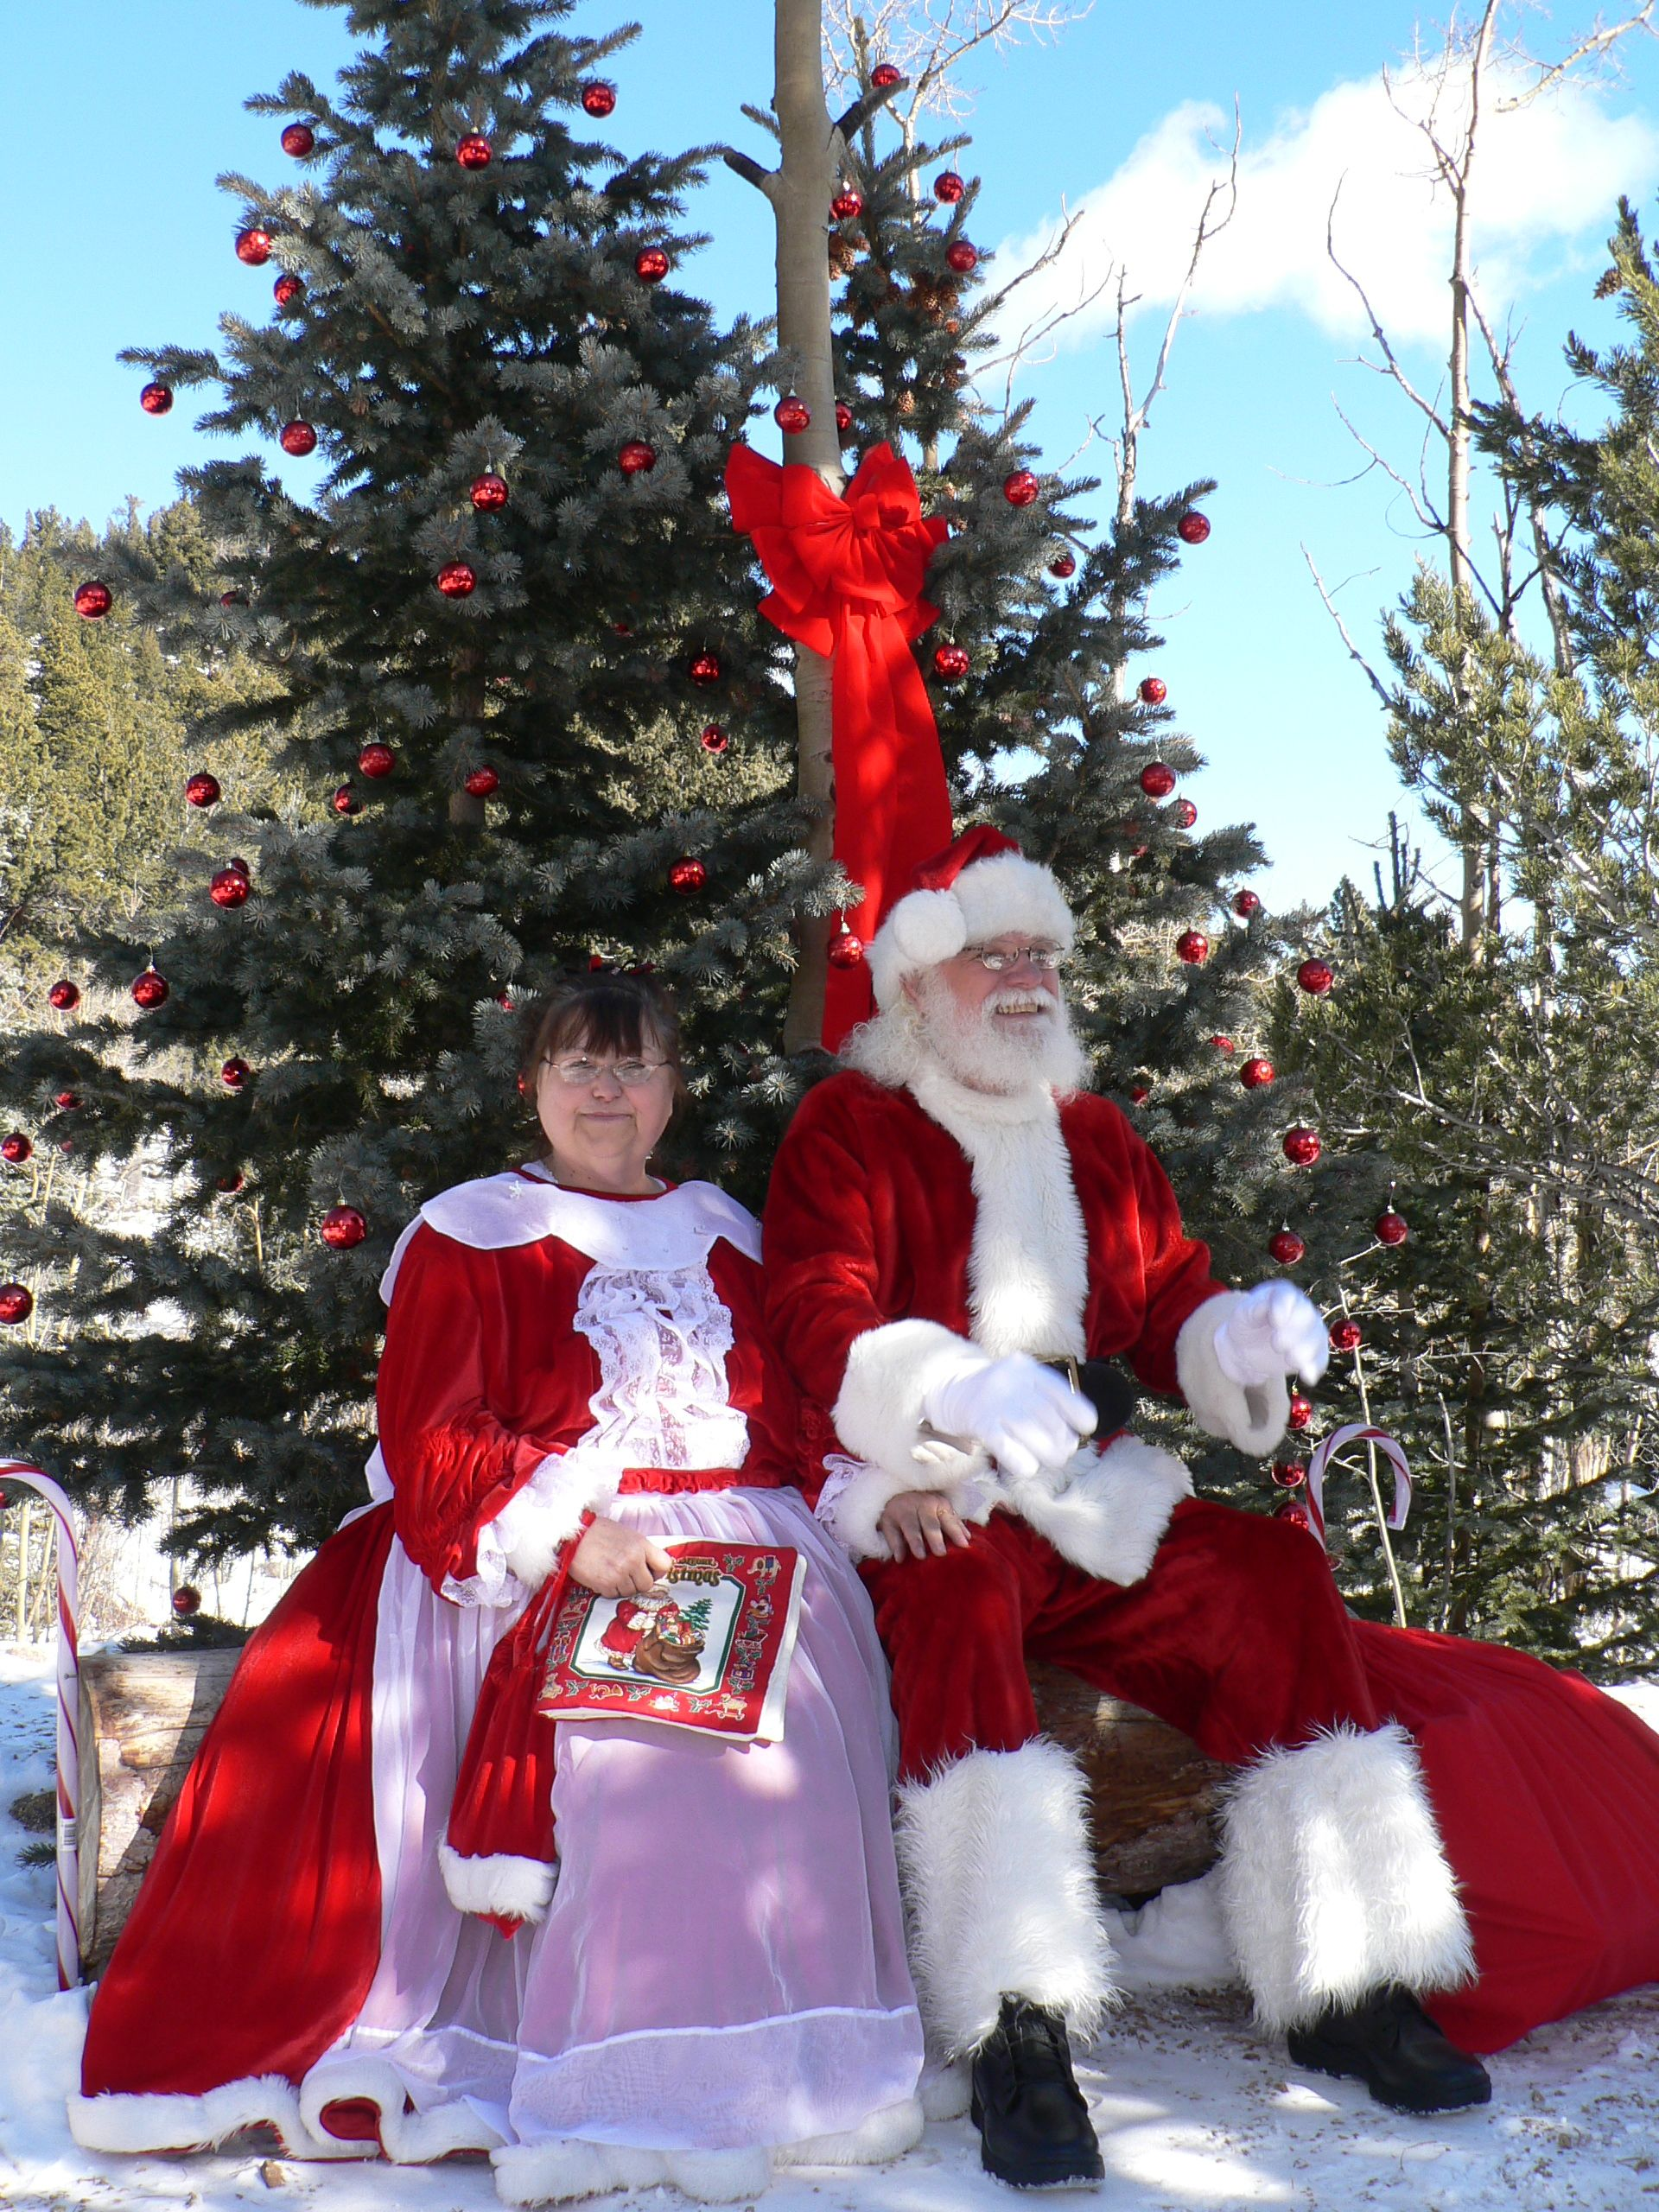 Santa And Mrs Claus Sitting At The North Pole 4 Mile Stop To Spend Time With The Children For More Informatio Santa Claus Is Coming To Town Santa Mrs Claus